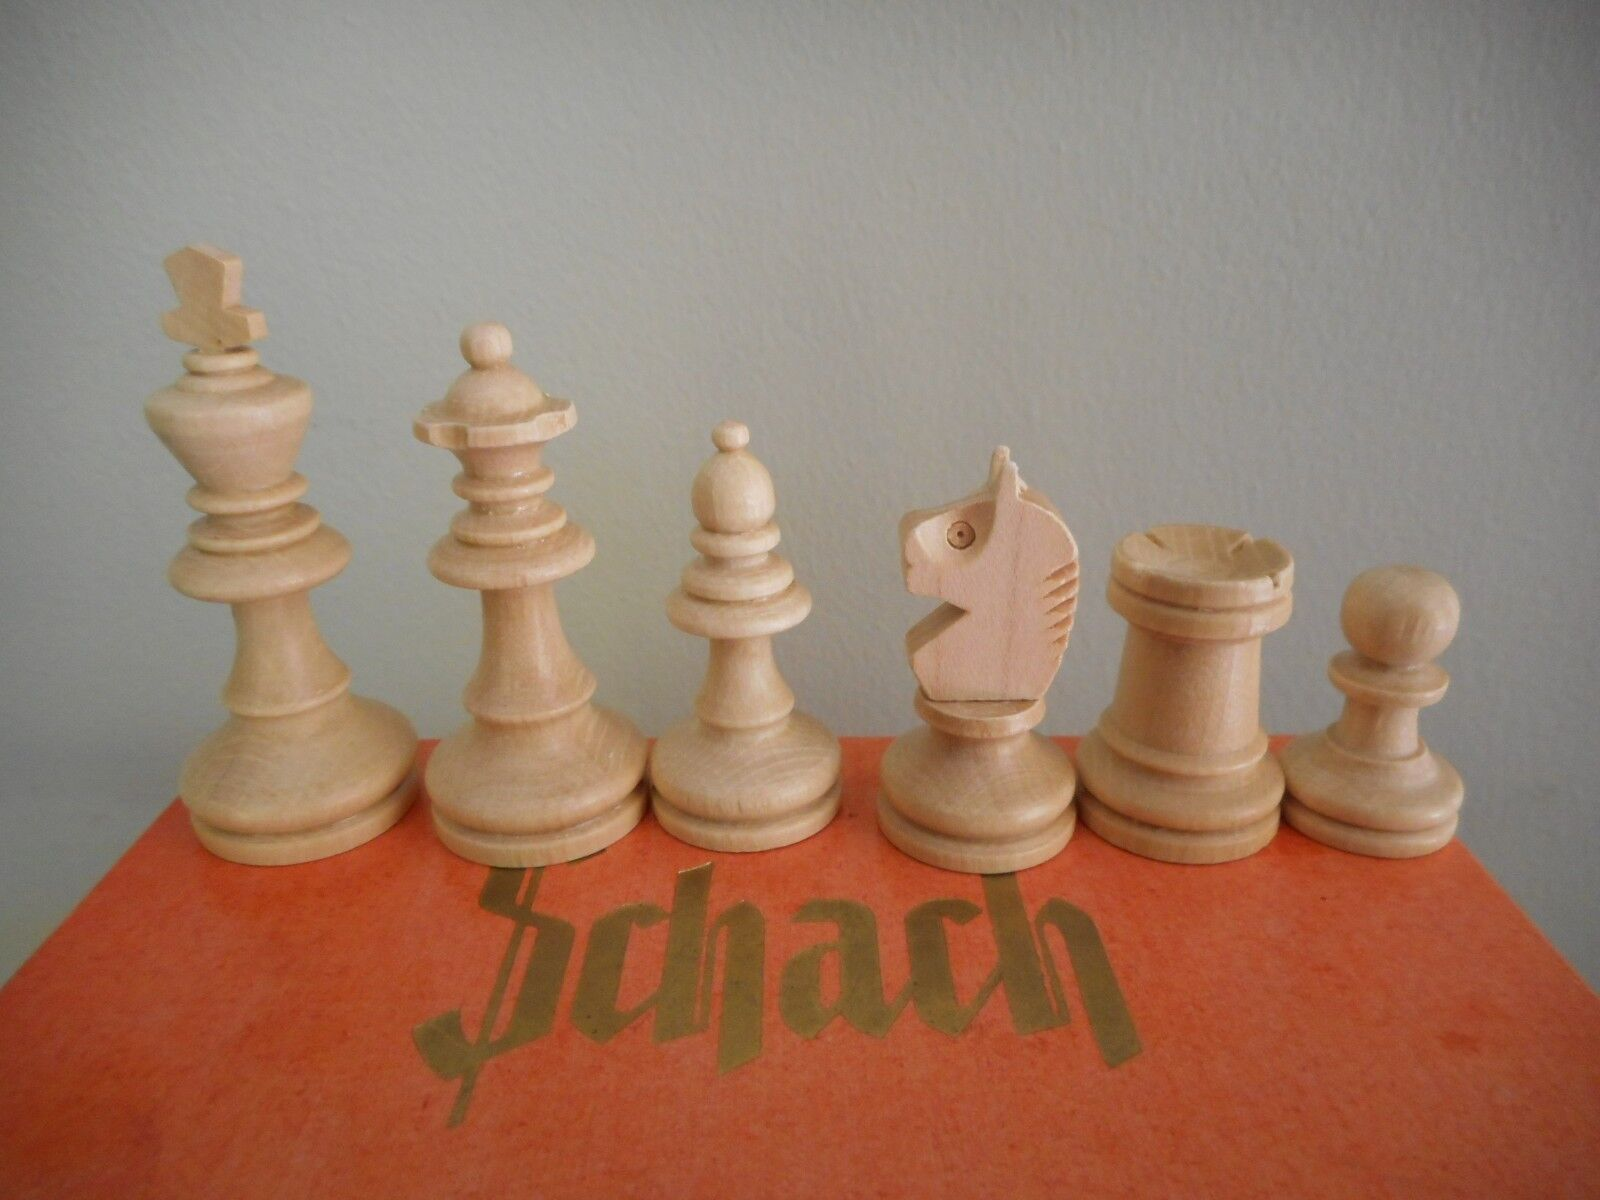 Vintage wood chess set in original box, made in Germany